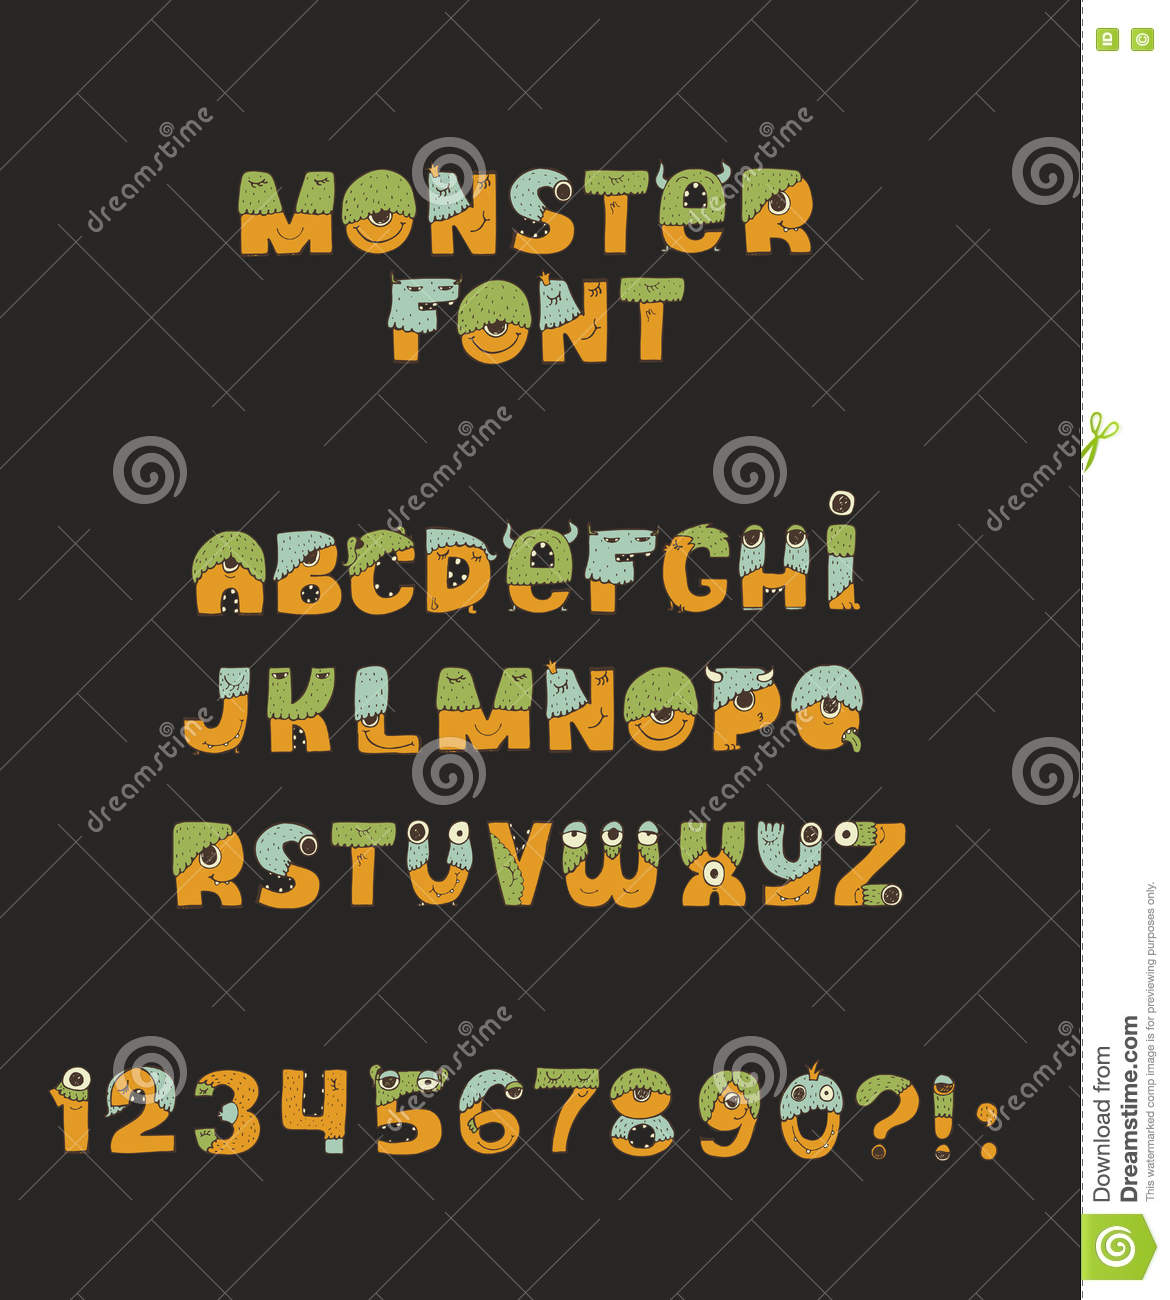 Vector cute colorful kind monster font. Every letter has unique design with fur, eyes, nose, mouth and teeth. Some have crowns and